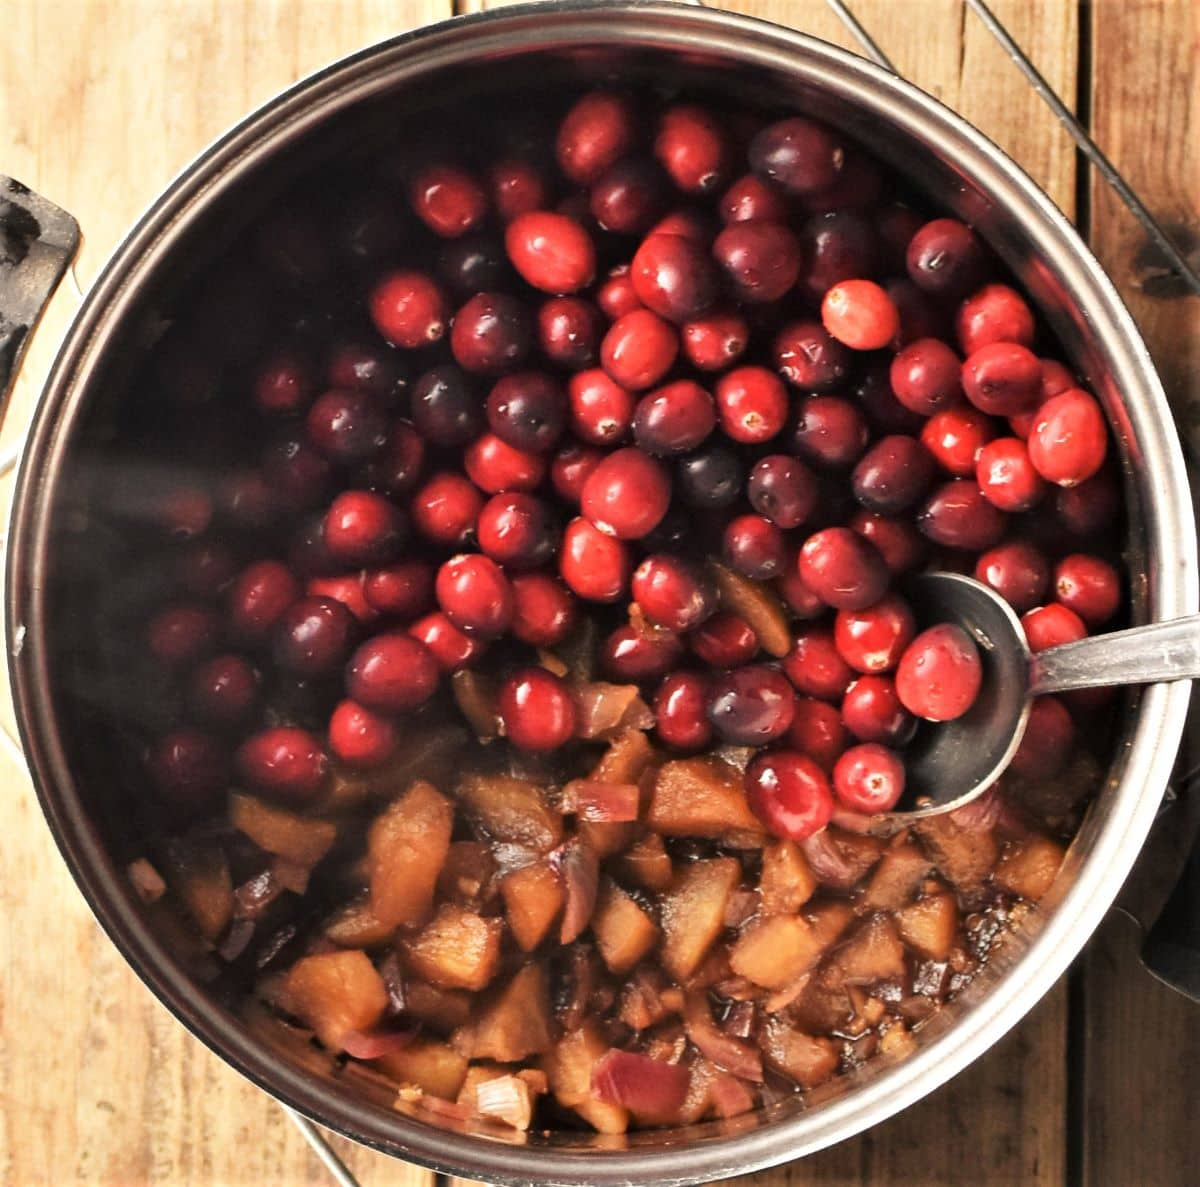 Cooking cranberries with apples and spices in pot.